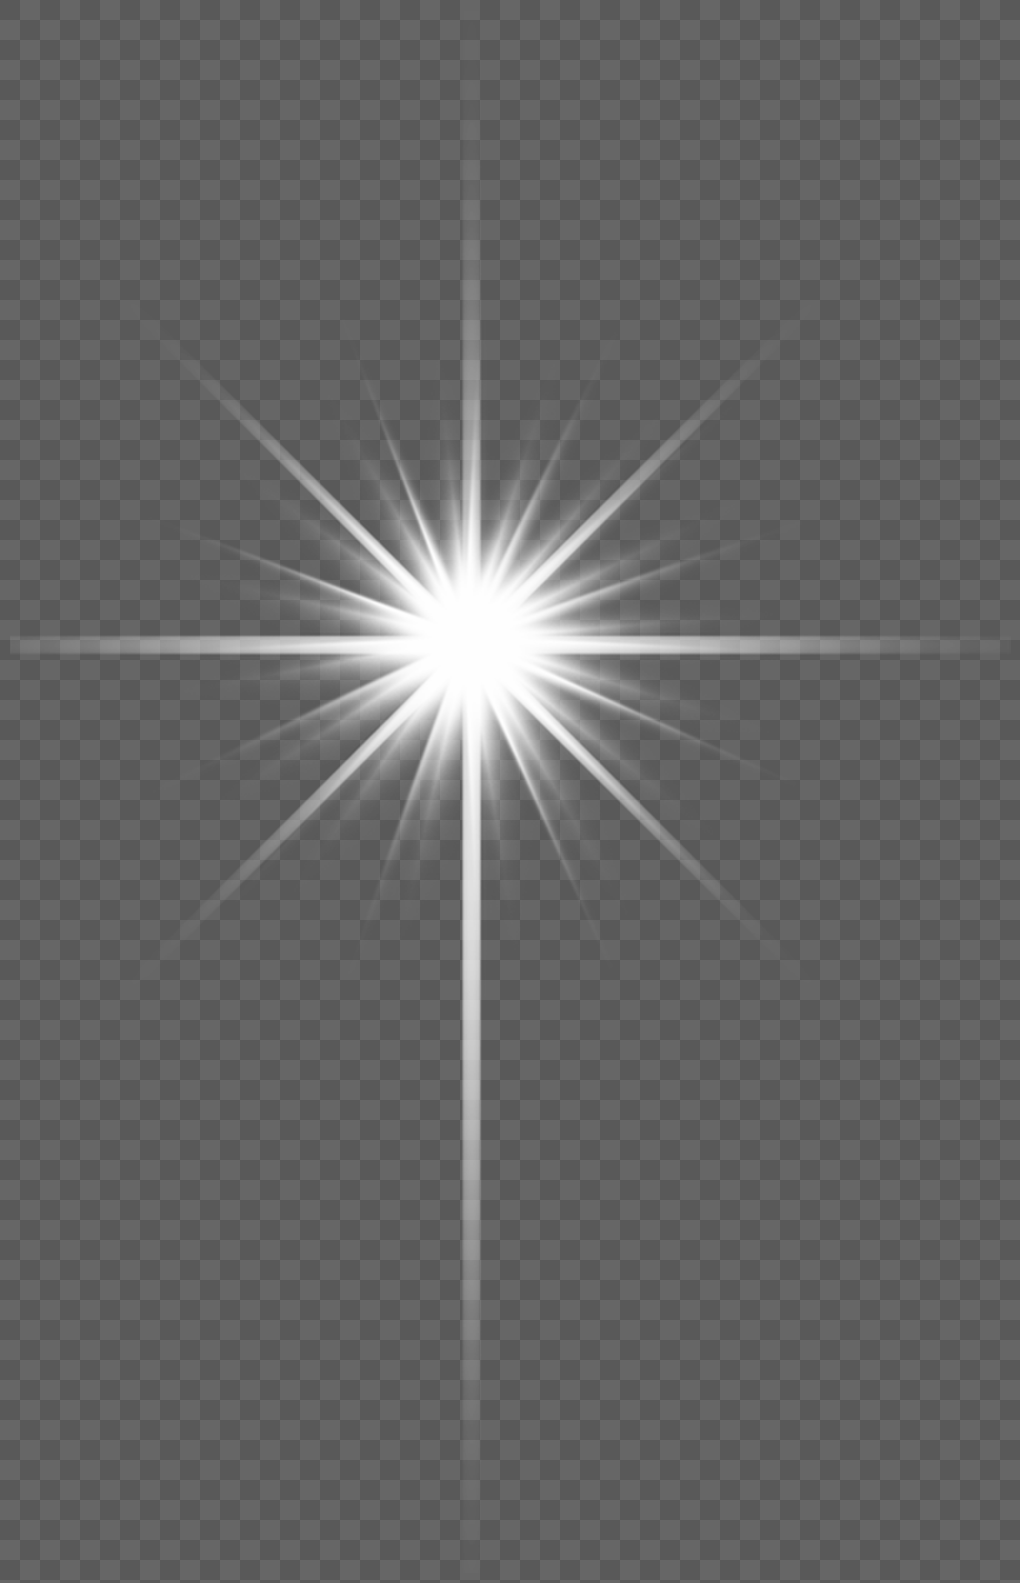 dream star light effect png image picture free download 400539886 lovepik com